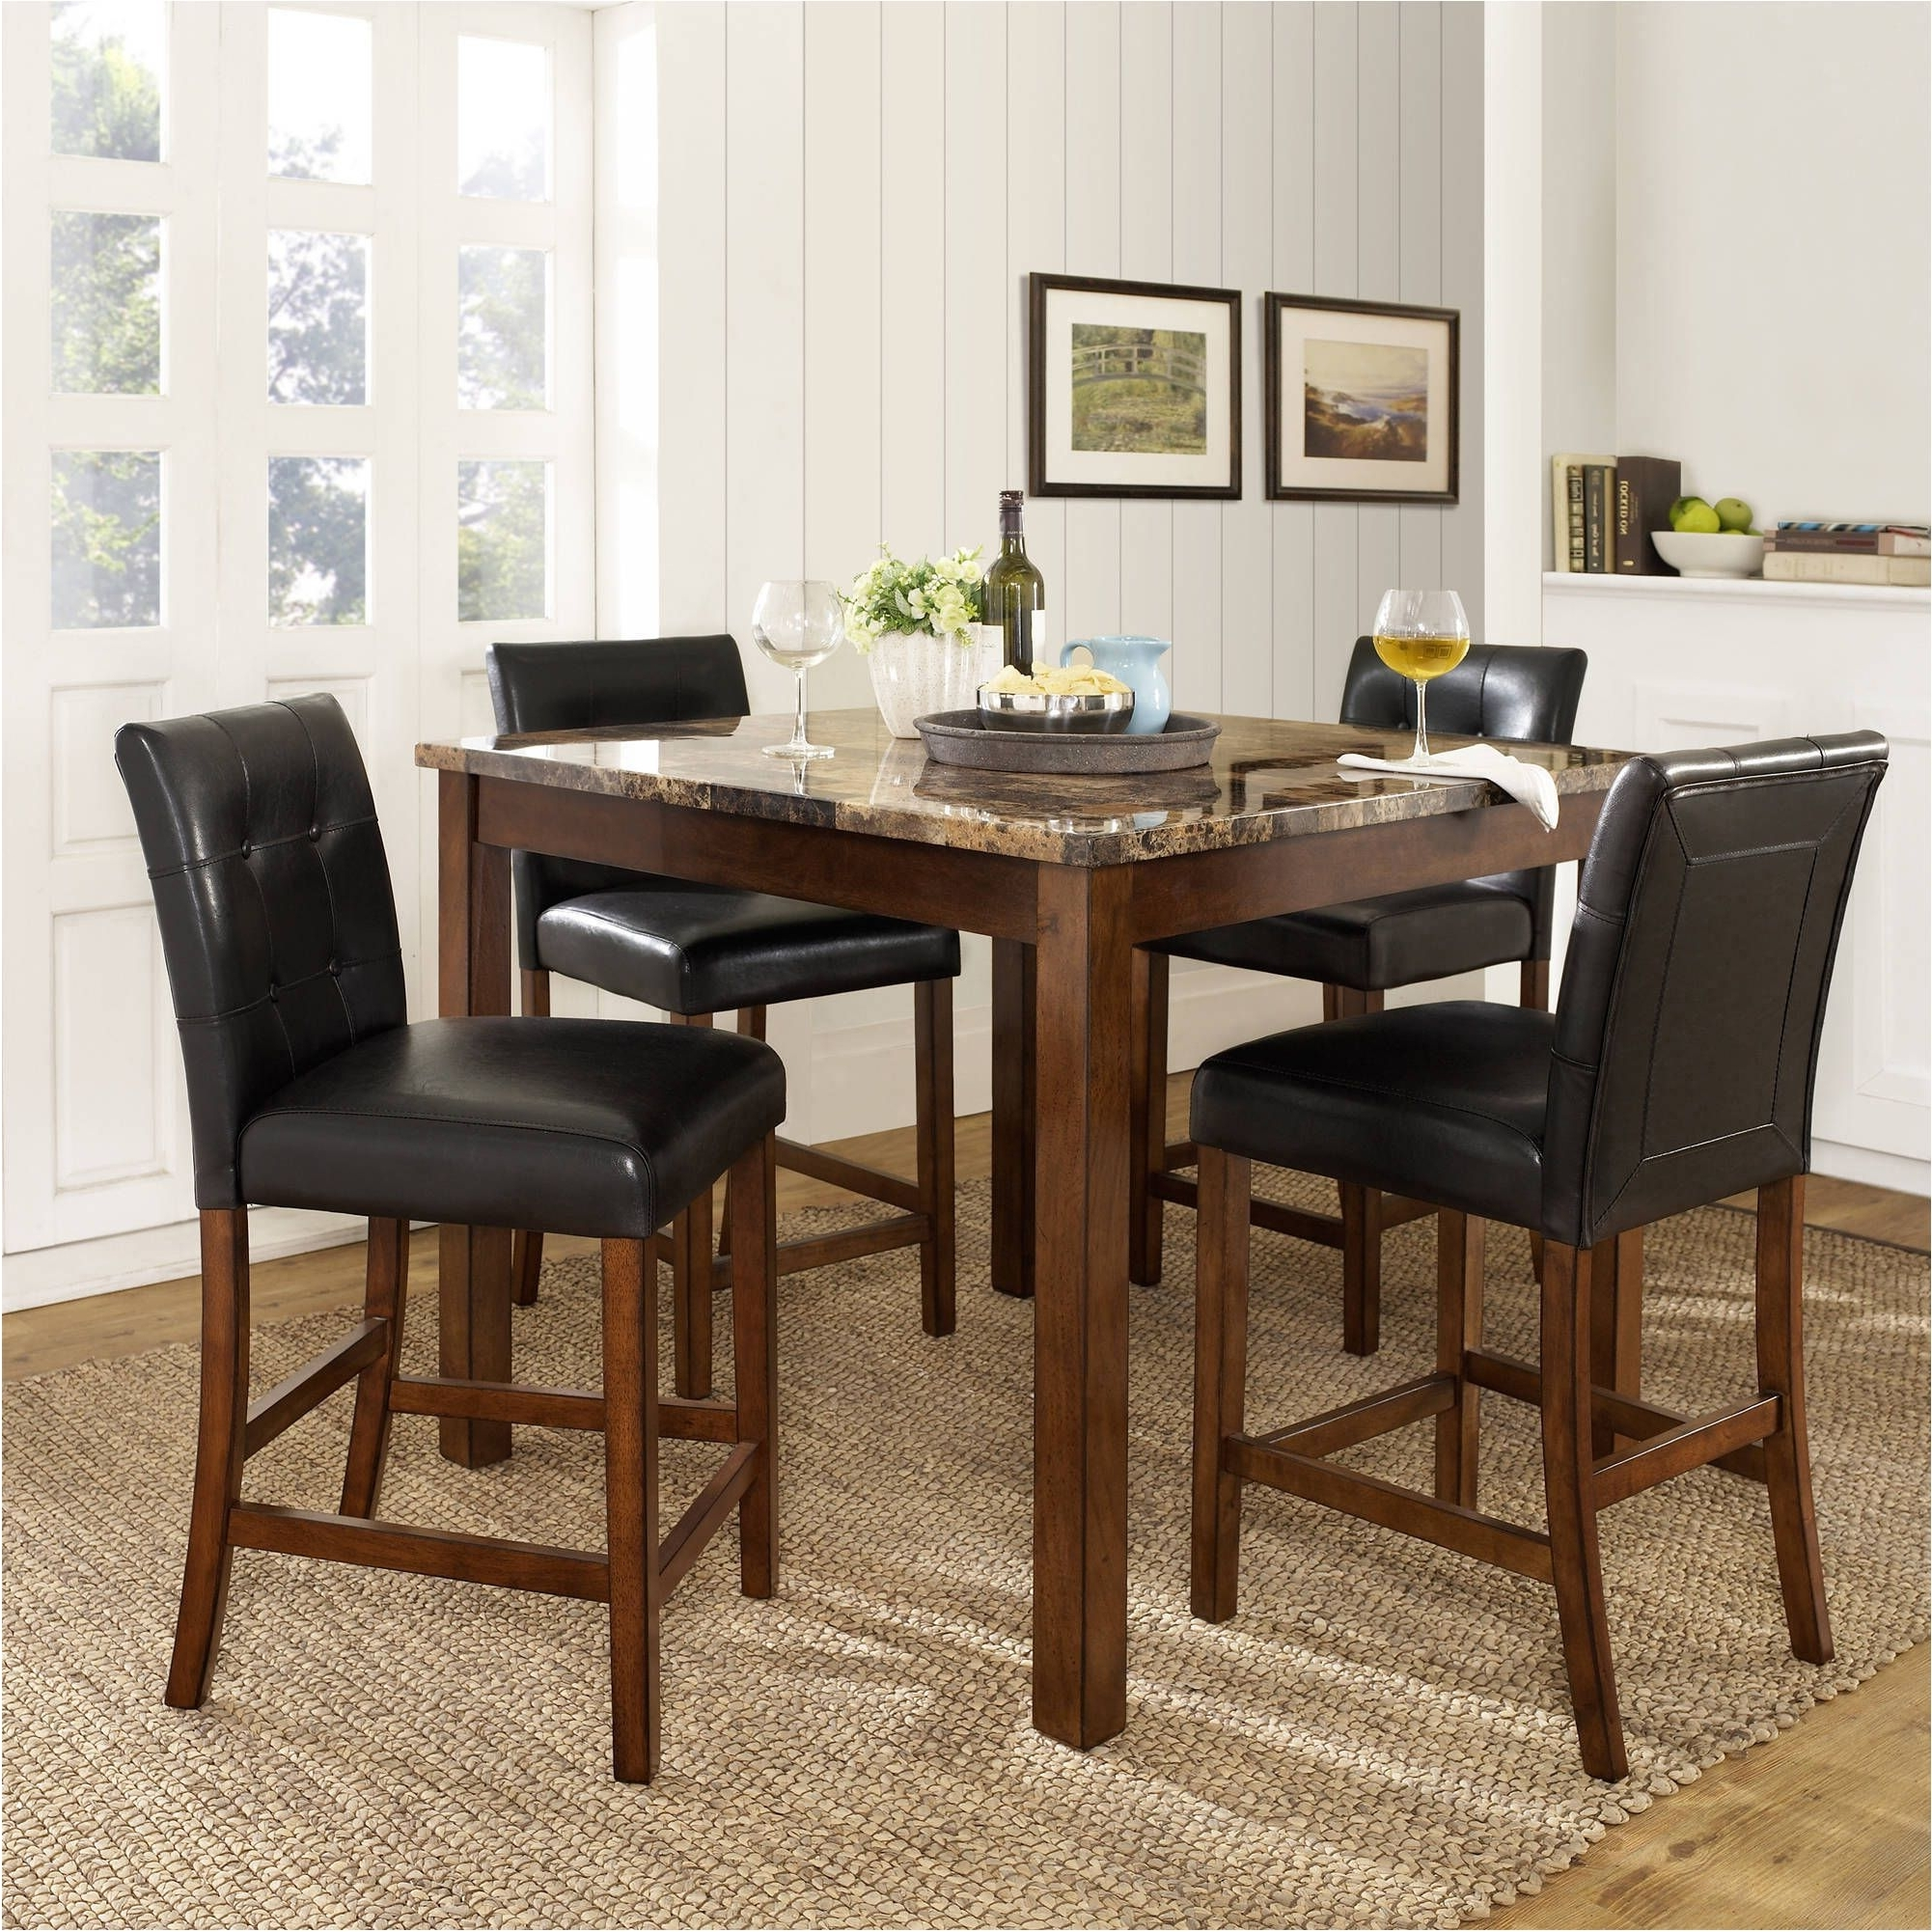 Cheap Dining Sets Throughout Newest Nice Surprising Discount Dining Sets 12 Unique Ideas Cheap Table And (View 1 of 25)